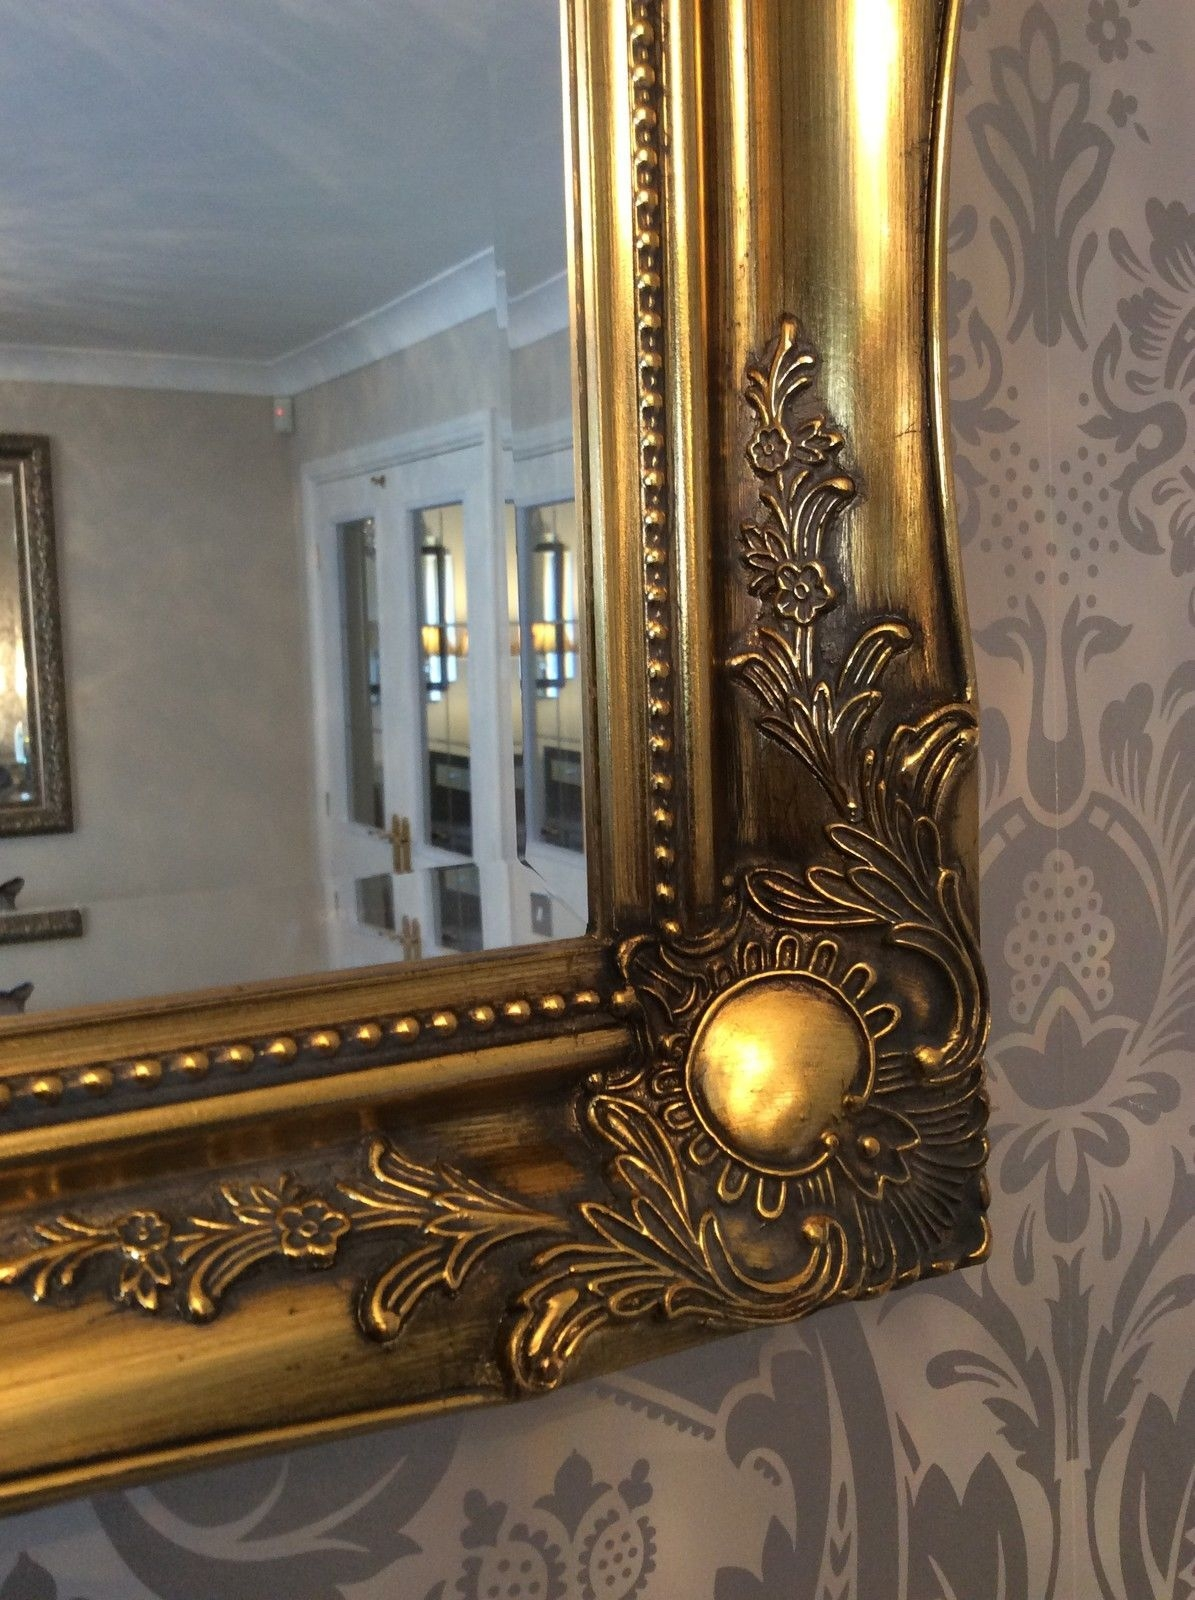 Antique Gold Shab Chic Ornate Decorative Over Mantle Gilt Wall Intended For Shabby Chic Gold Mirror (Image 3 of 15)